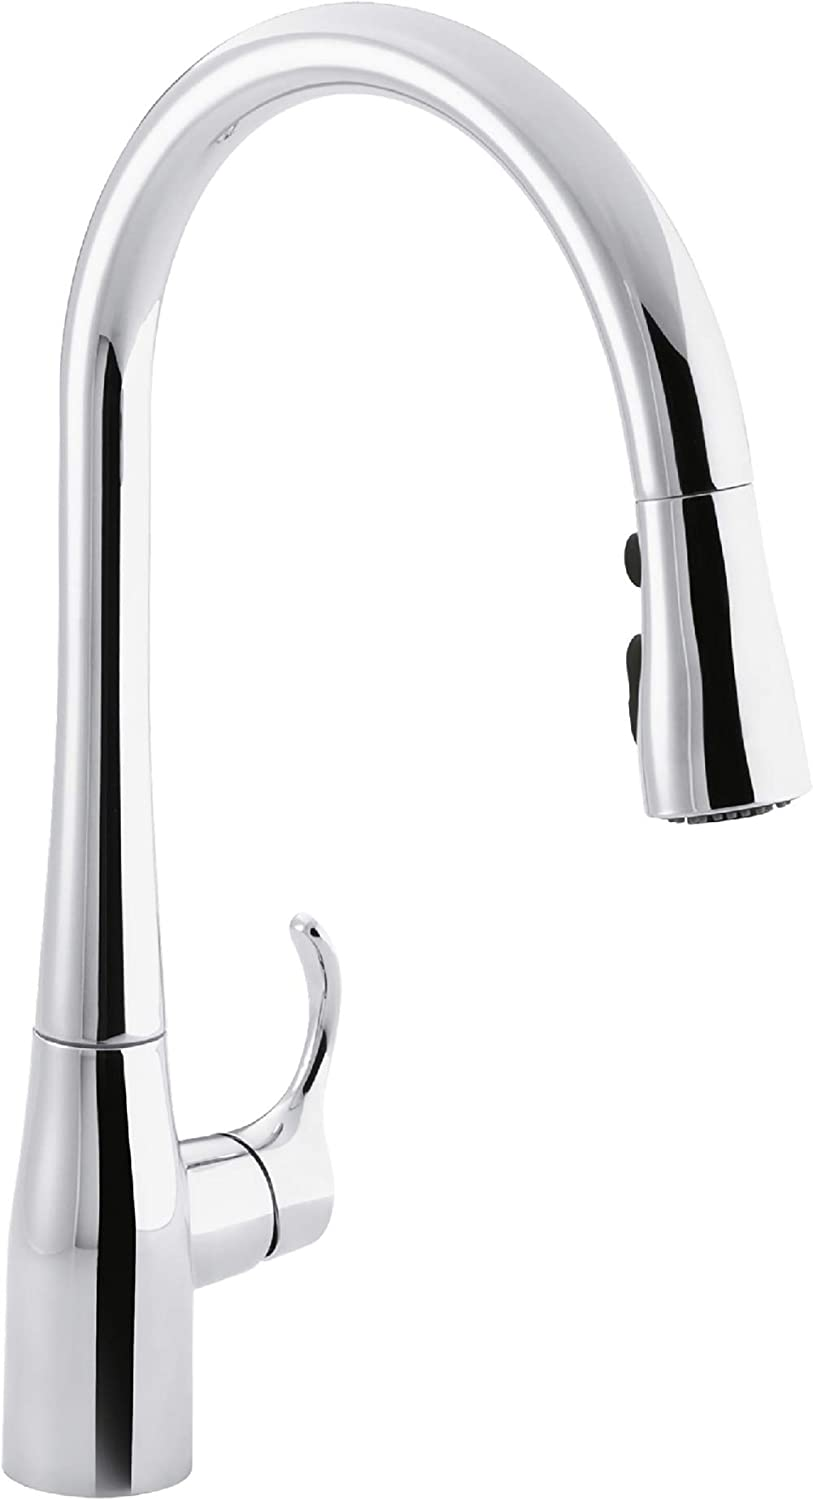 Top 10 Best Kitchen Faucets under $100, $150 to $200 Reviews in 2020 7